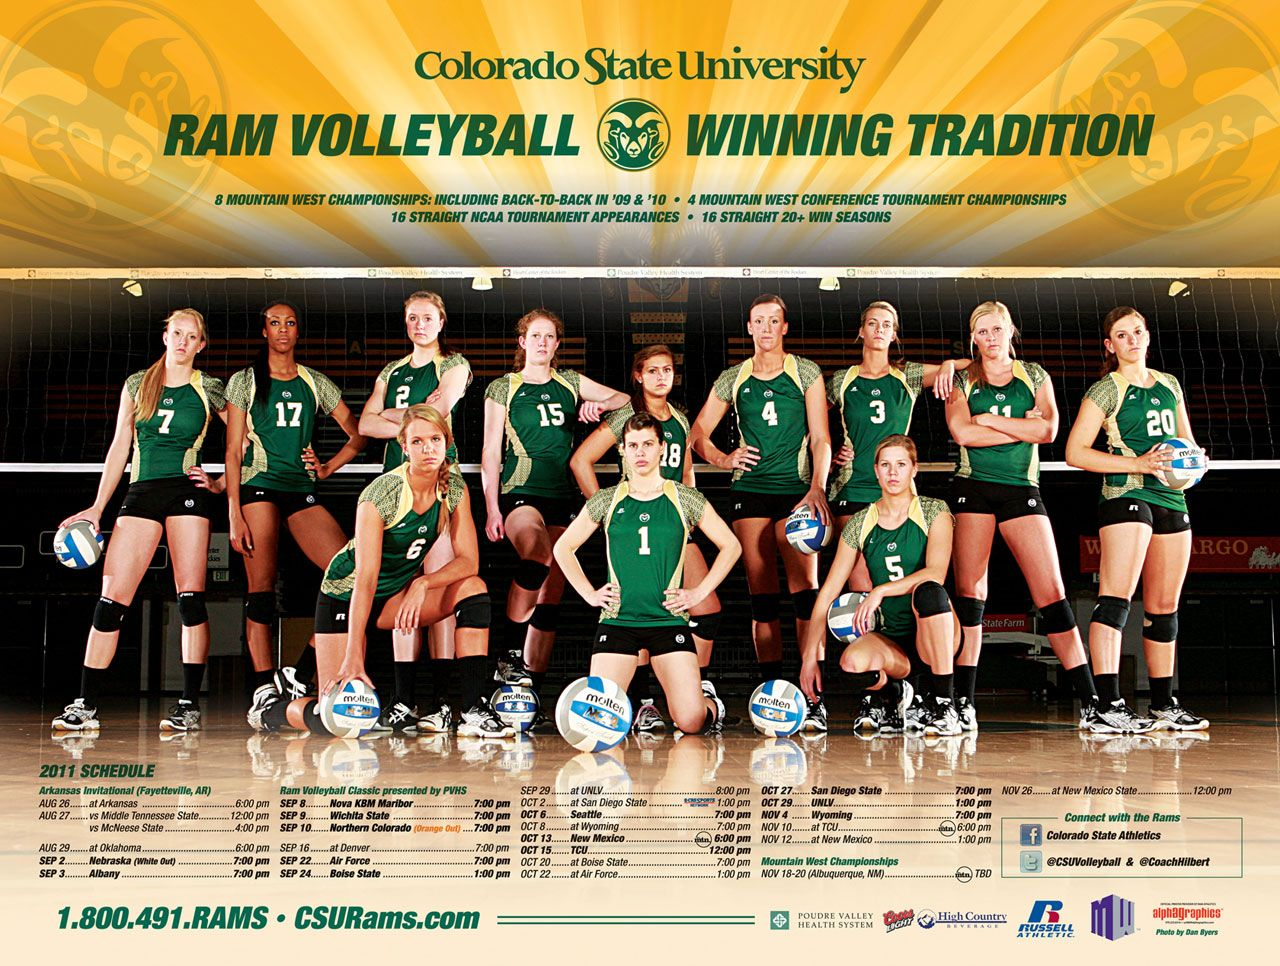 Http Grfx Cstv Com Schools Csu Graphics Wallpaper 11 Csu Volleyball Poster2 1280 Jpg Team Photography Volleyball Posters Sport Photography